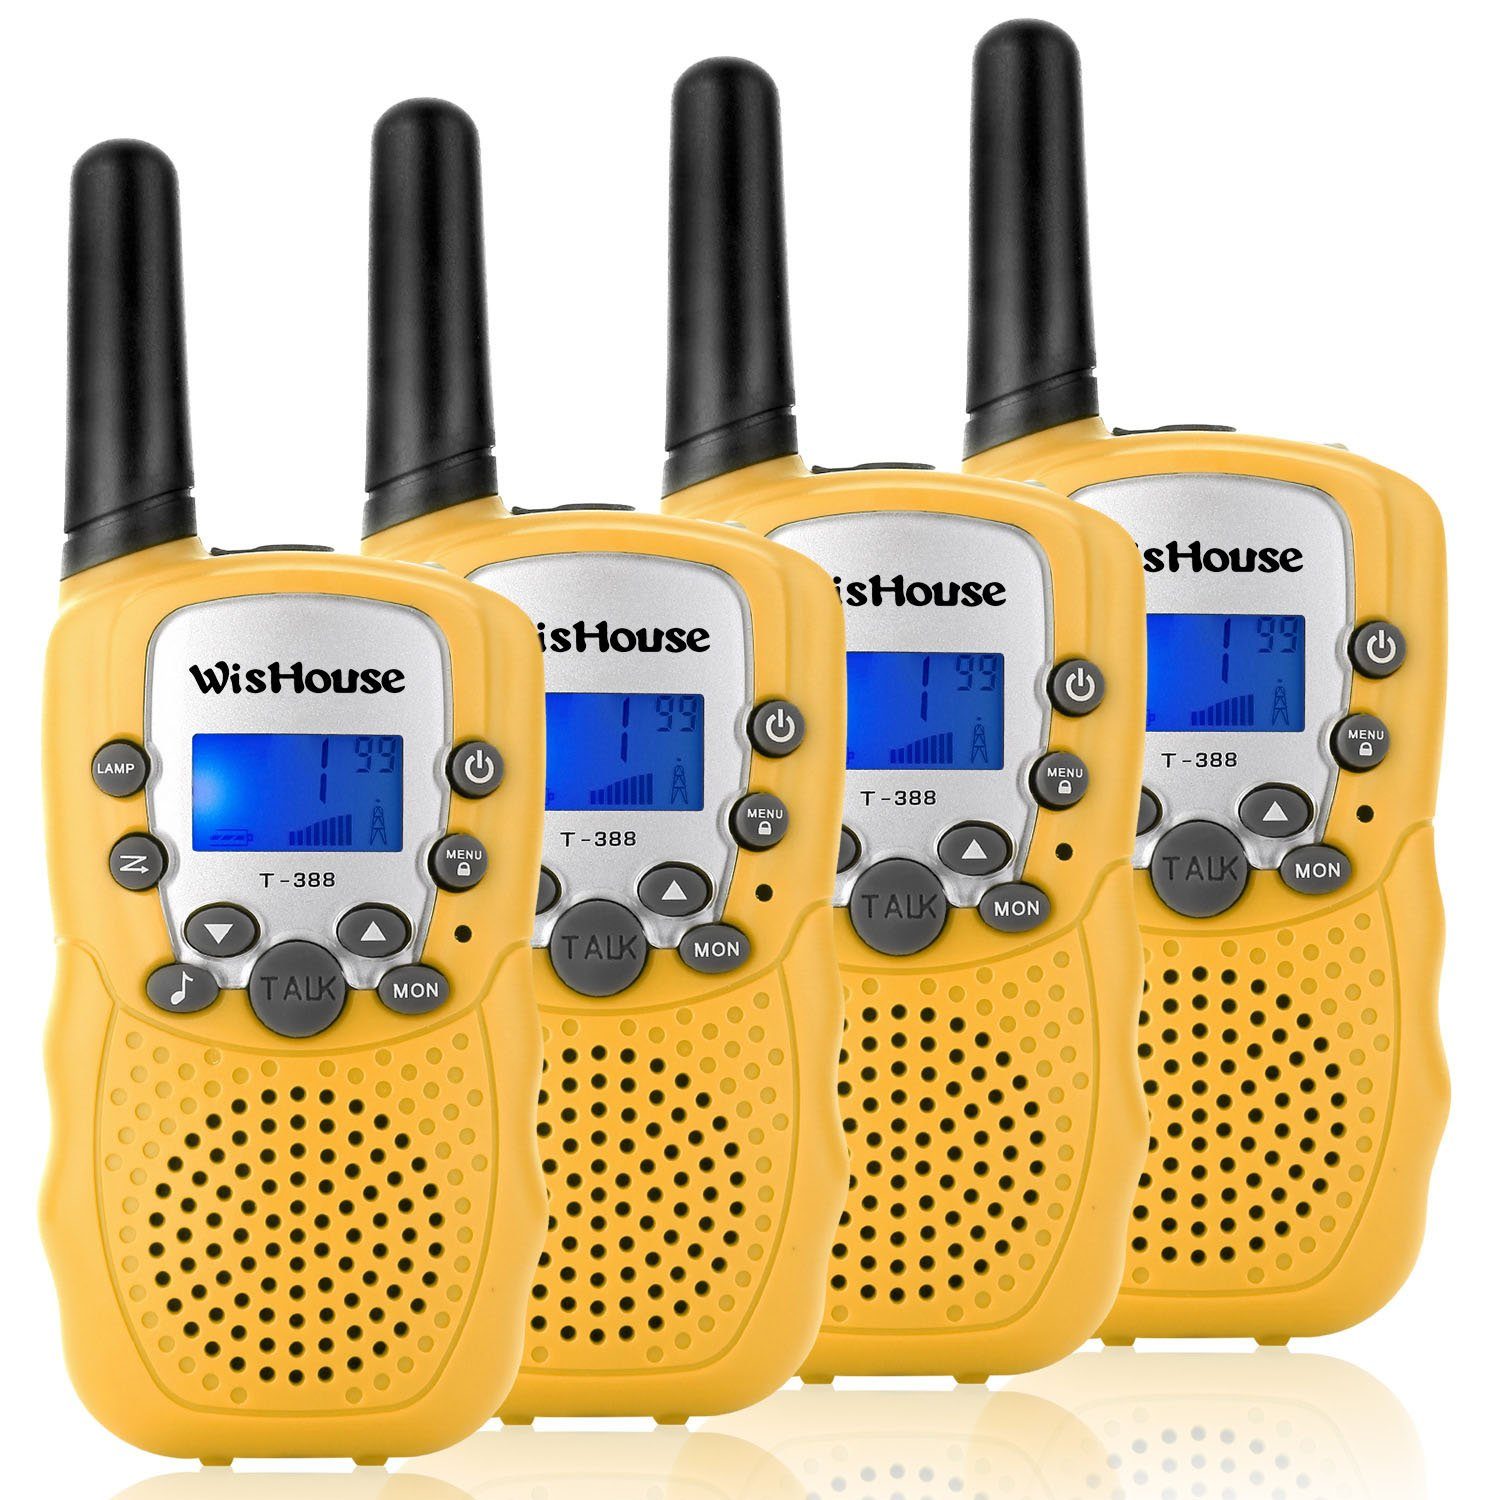 WisHouse Walkie Talkies for Kids, Toys for Boys and Girls Best Handheld Walky Talky with Flashlight,VOX Function,Share Your Happiness with Family and Friends Halloween(T388 Yellow 4 Pack) by Wishouse (Image #1)